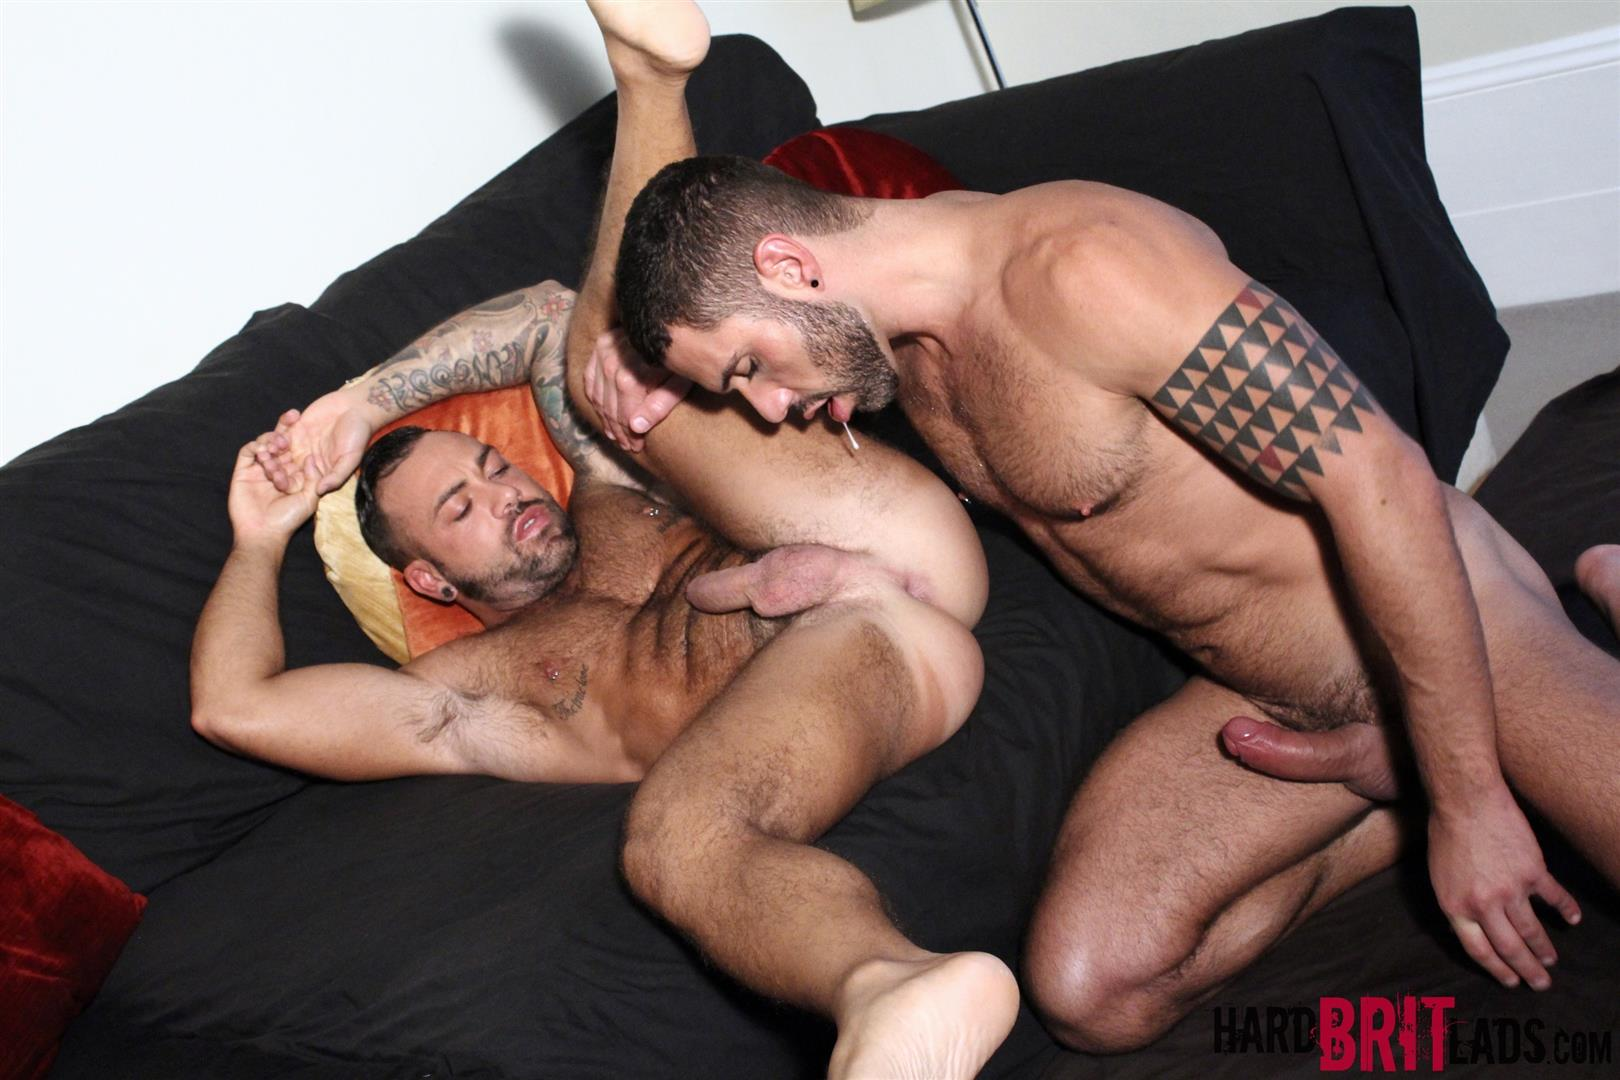 Hard-Brit-Lads-Sergi-Rodriguez-and-Letterio-Amadeo-Big-Uncut-Cock-Fucking-Amateur-Gay-Porn-14 Hairy British Muscle Hunks Fucking With Their Big Uncut Cocks